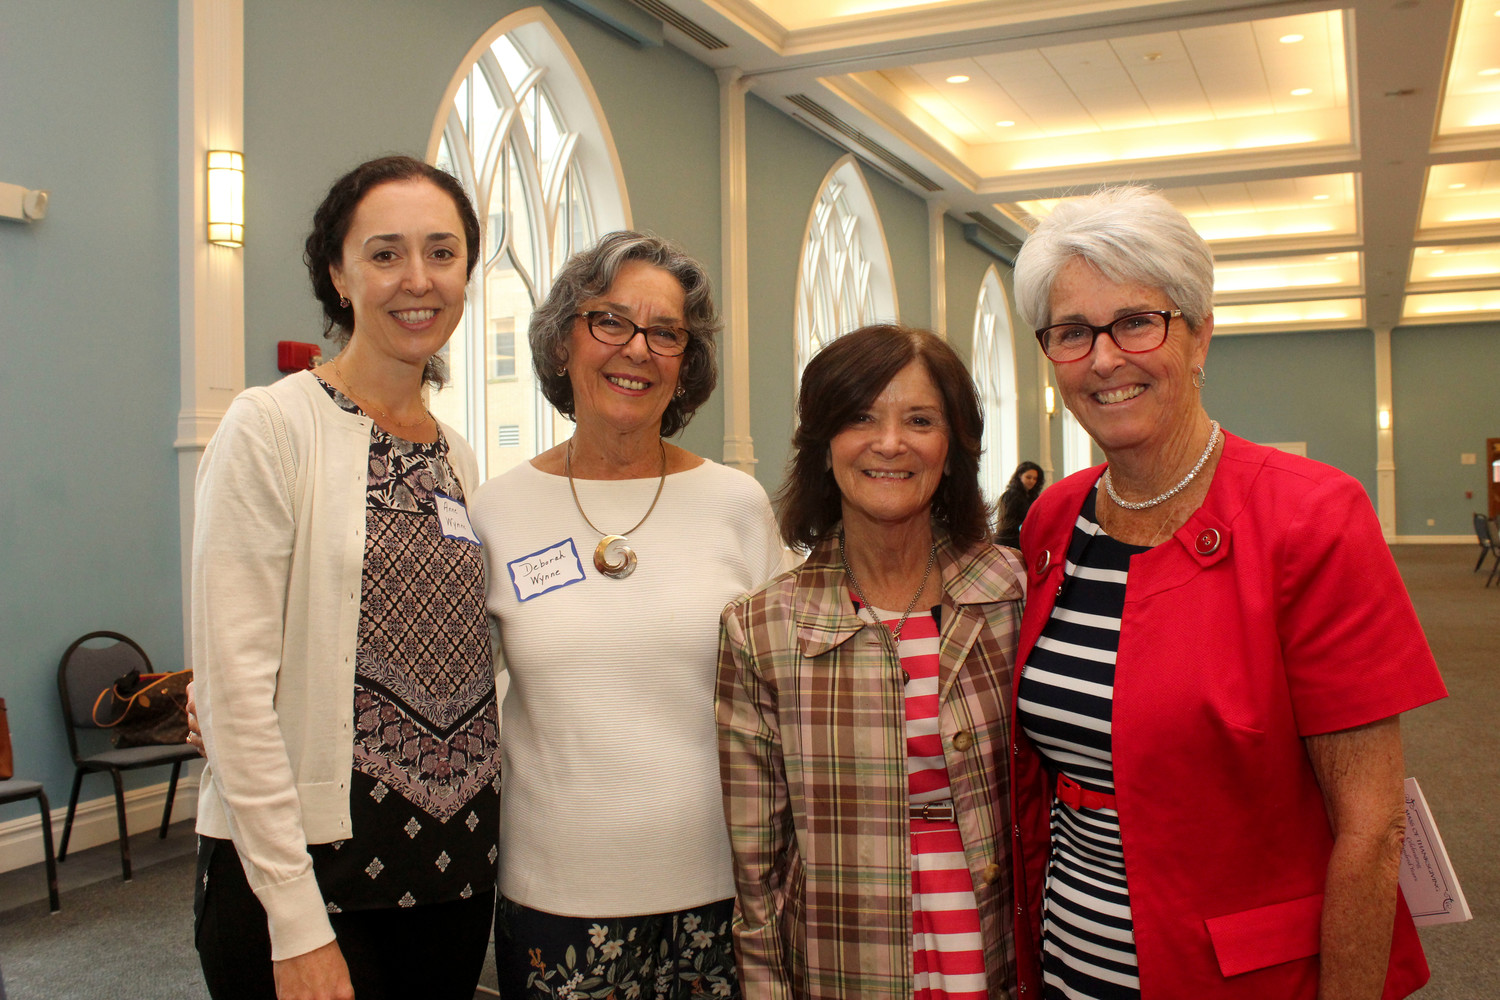 Anne Wynne, left, her mother, Deborah, a teacher at St. Agnes Cathedral School for 17 years, 35-year teacher Pat Mayerhofer and former co-principal Helen Newman enjoyed the gathering.